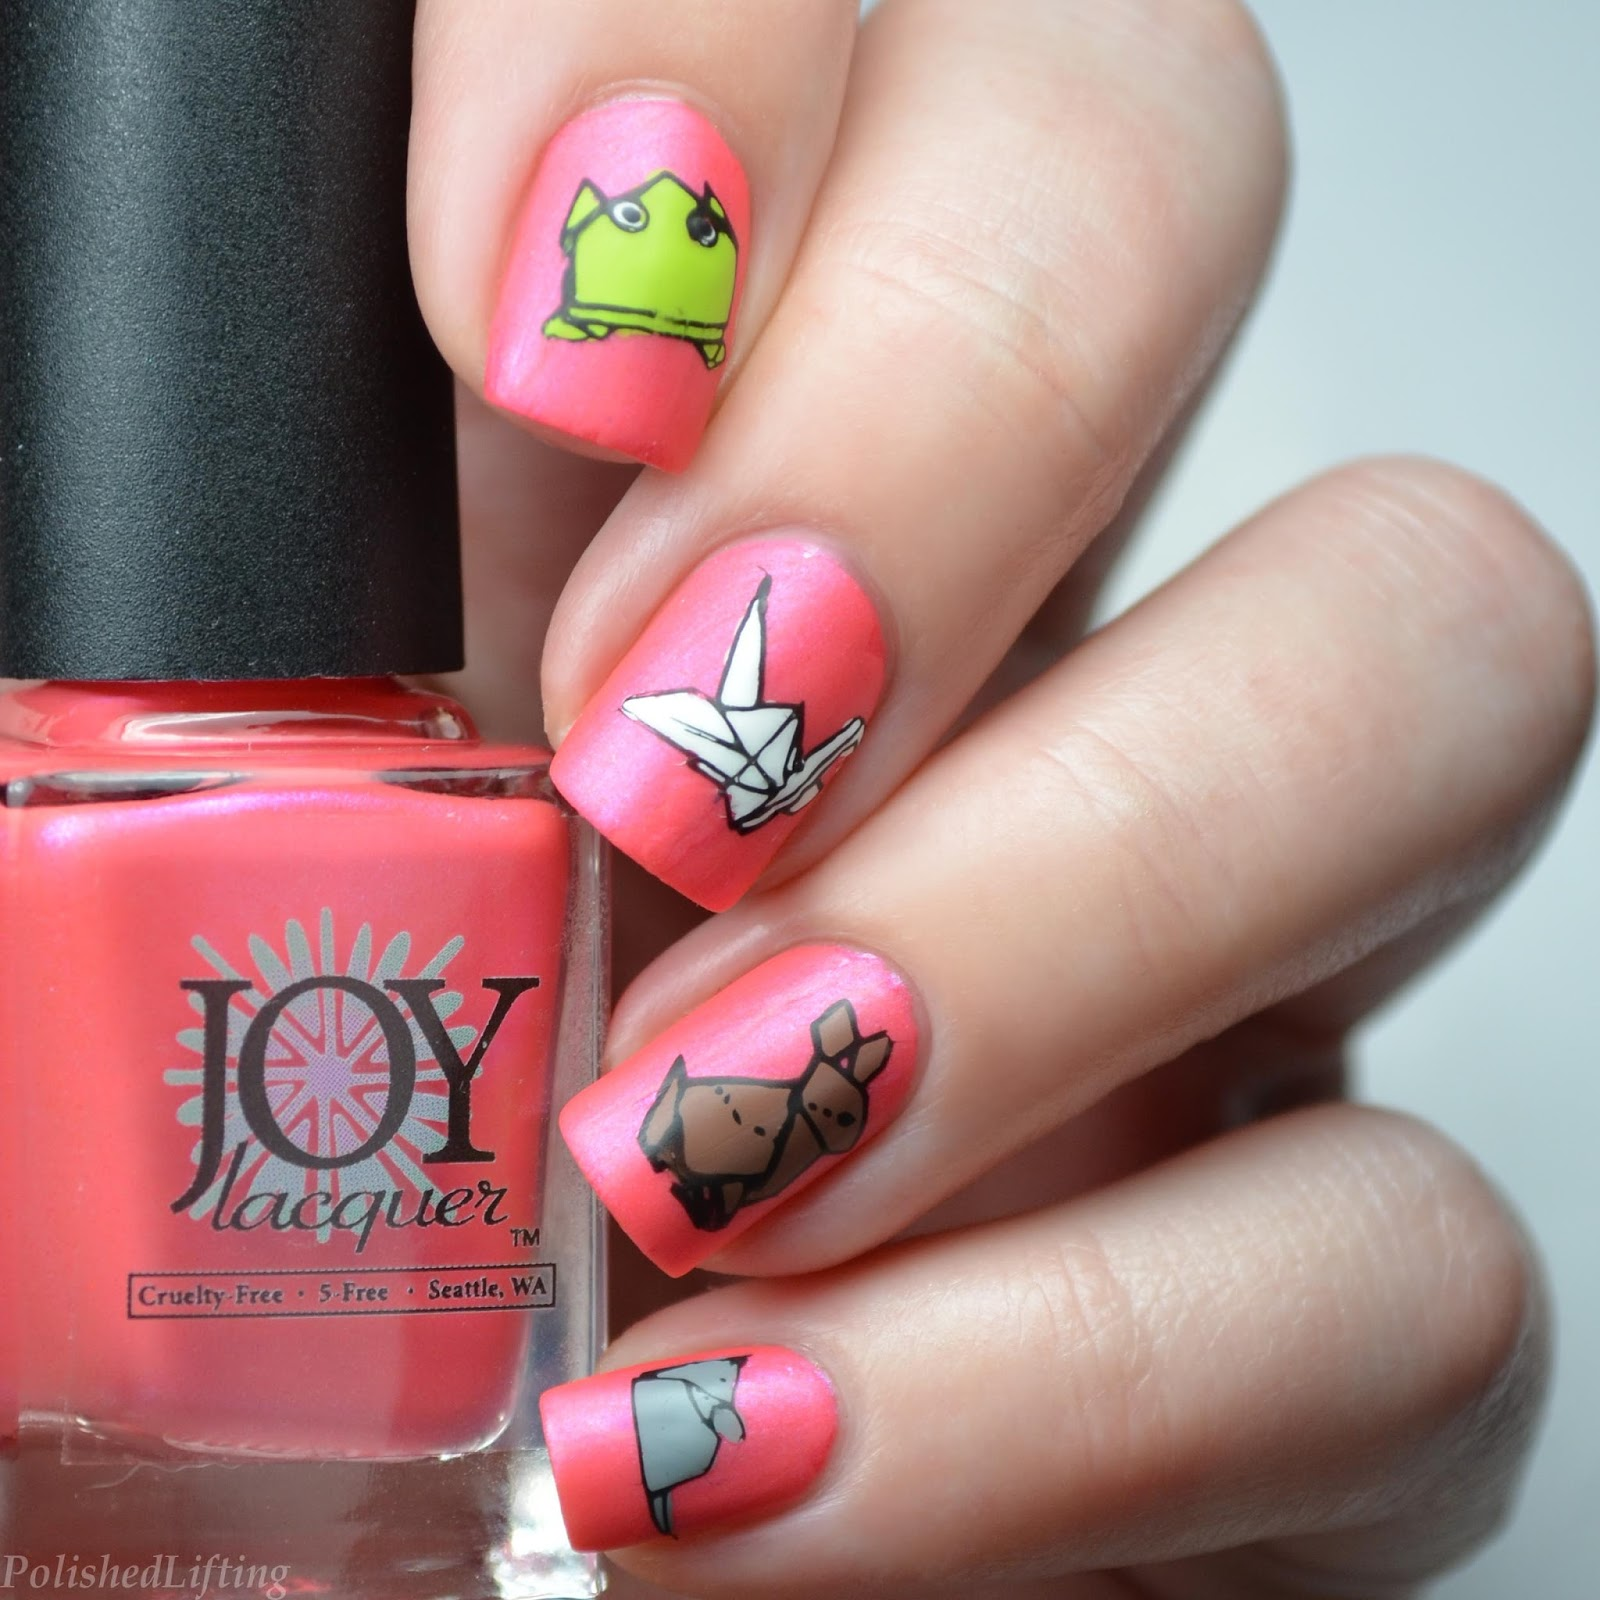 Polished Lifting: Origami Paper Animals featuring Joy Lacquer - photo#45